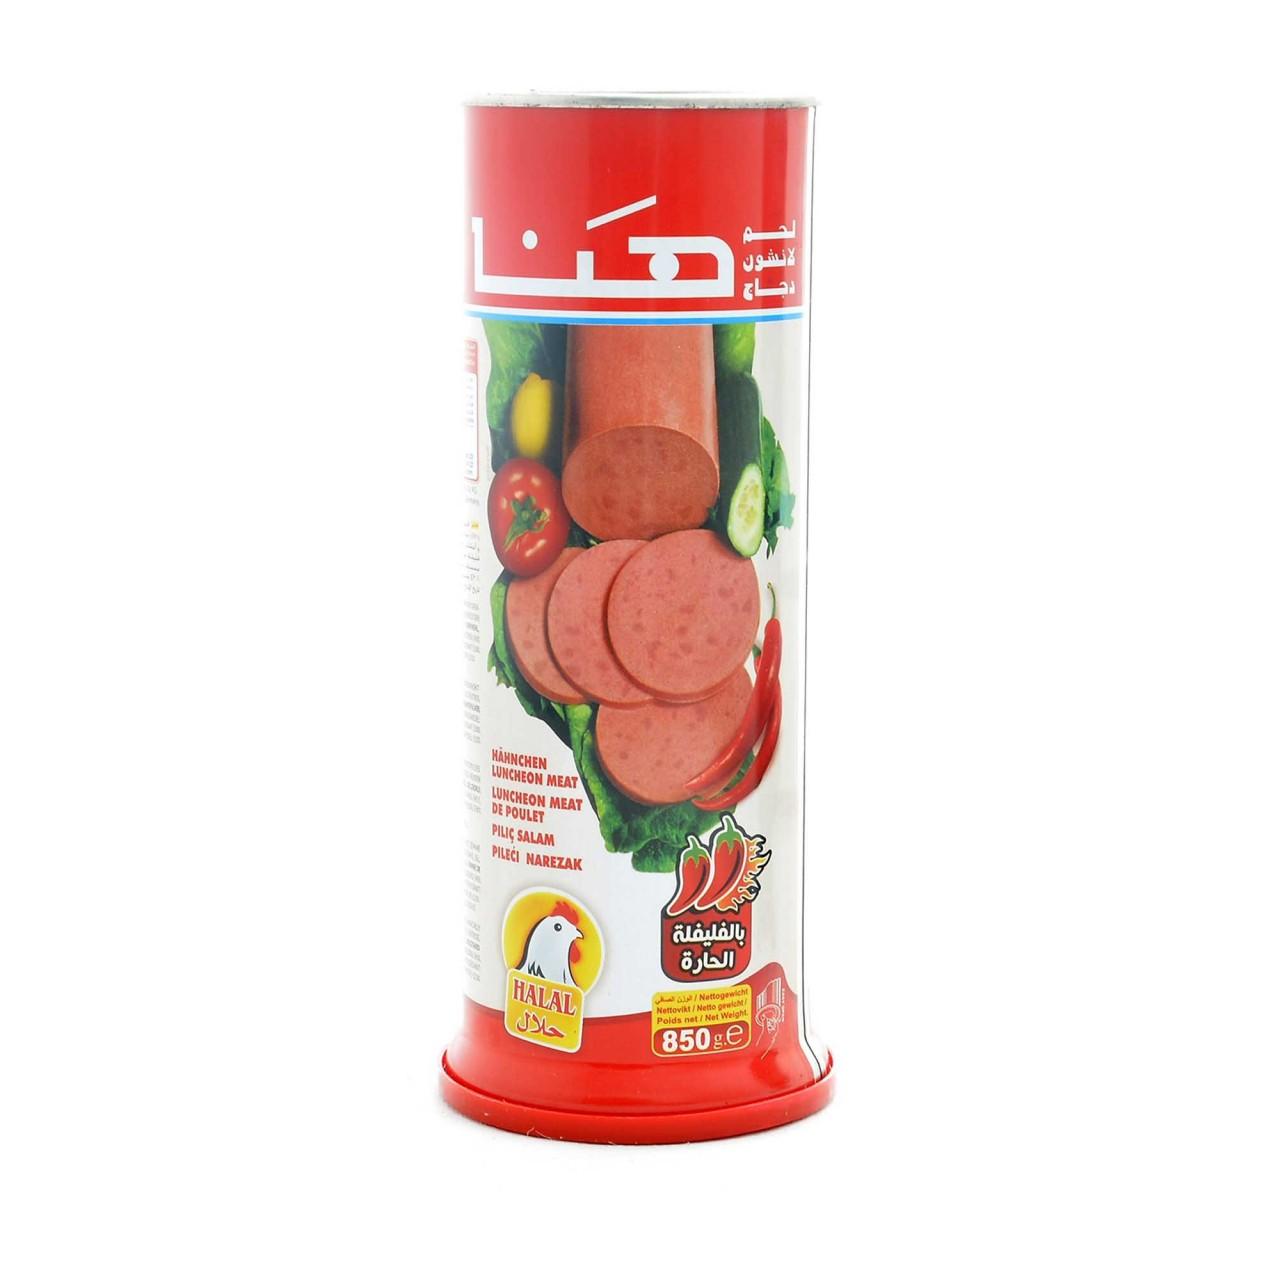 Mortadella Chicken Hana With Hot Pepper 850g Shop Online Mozzaik